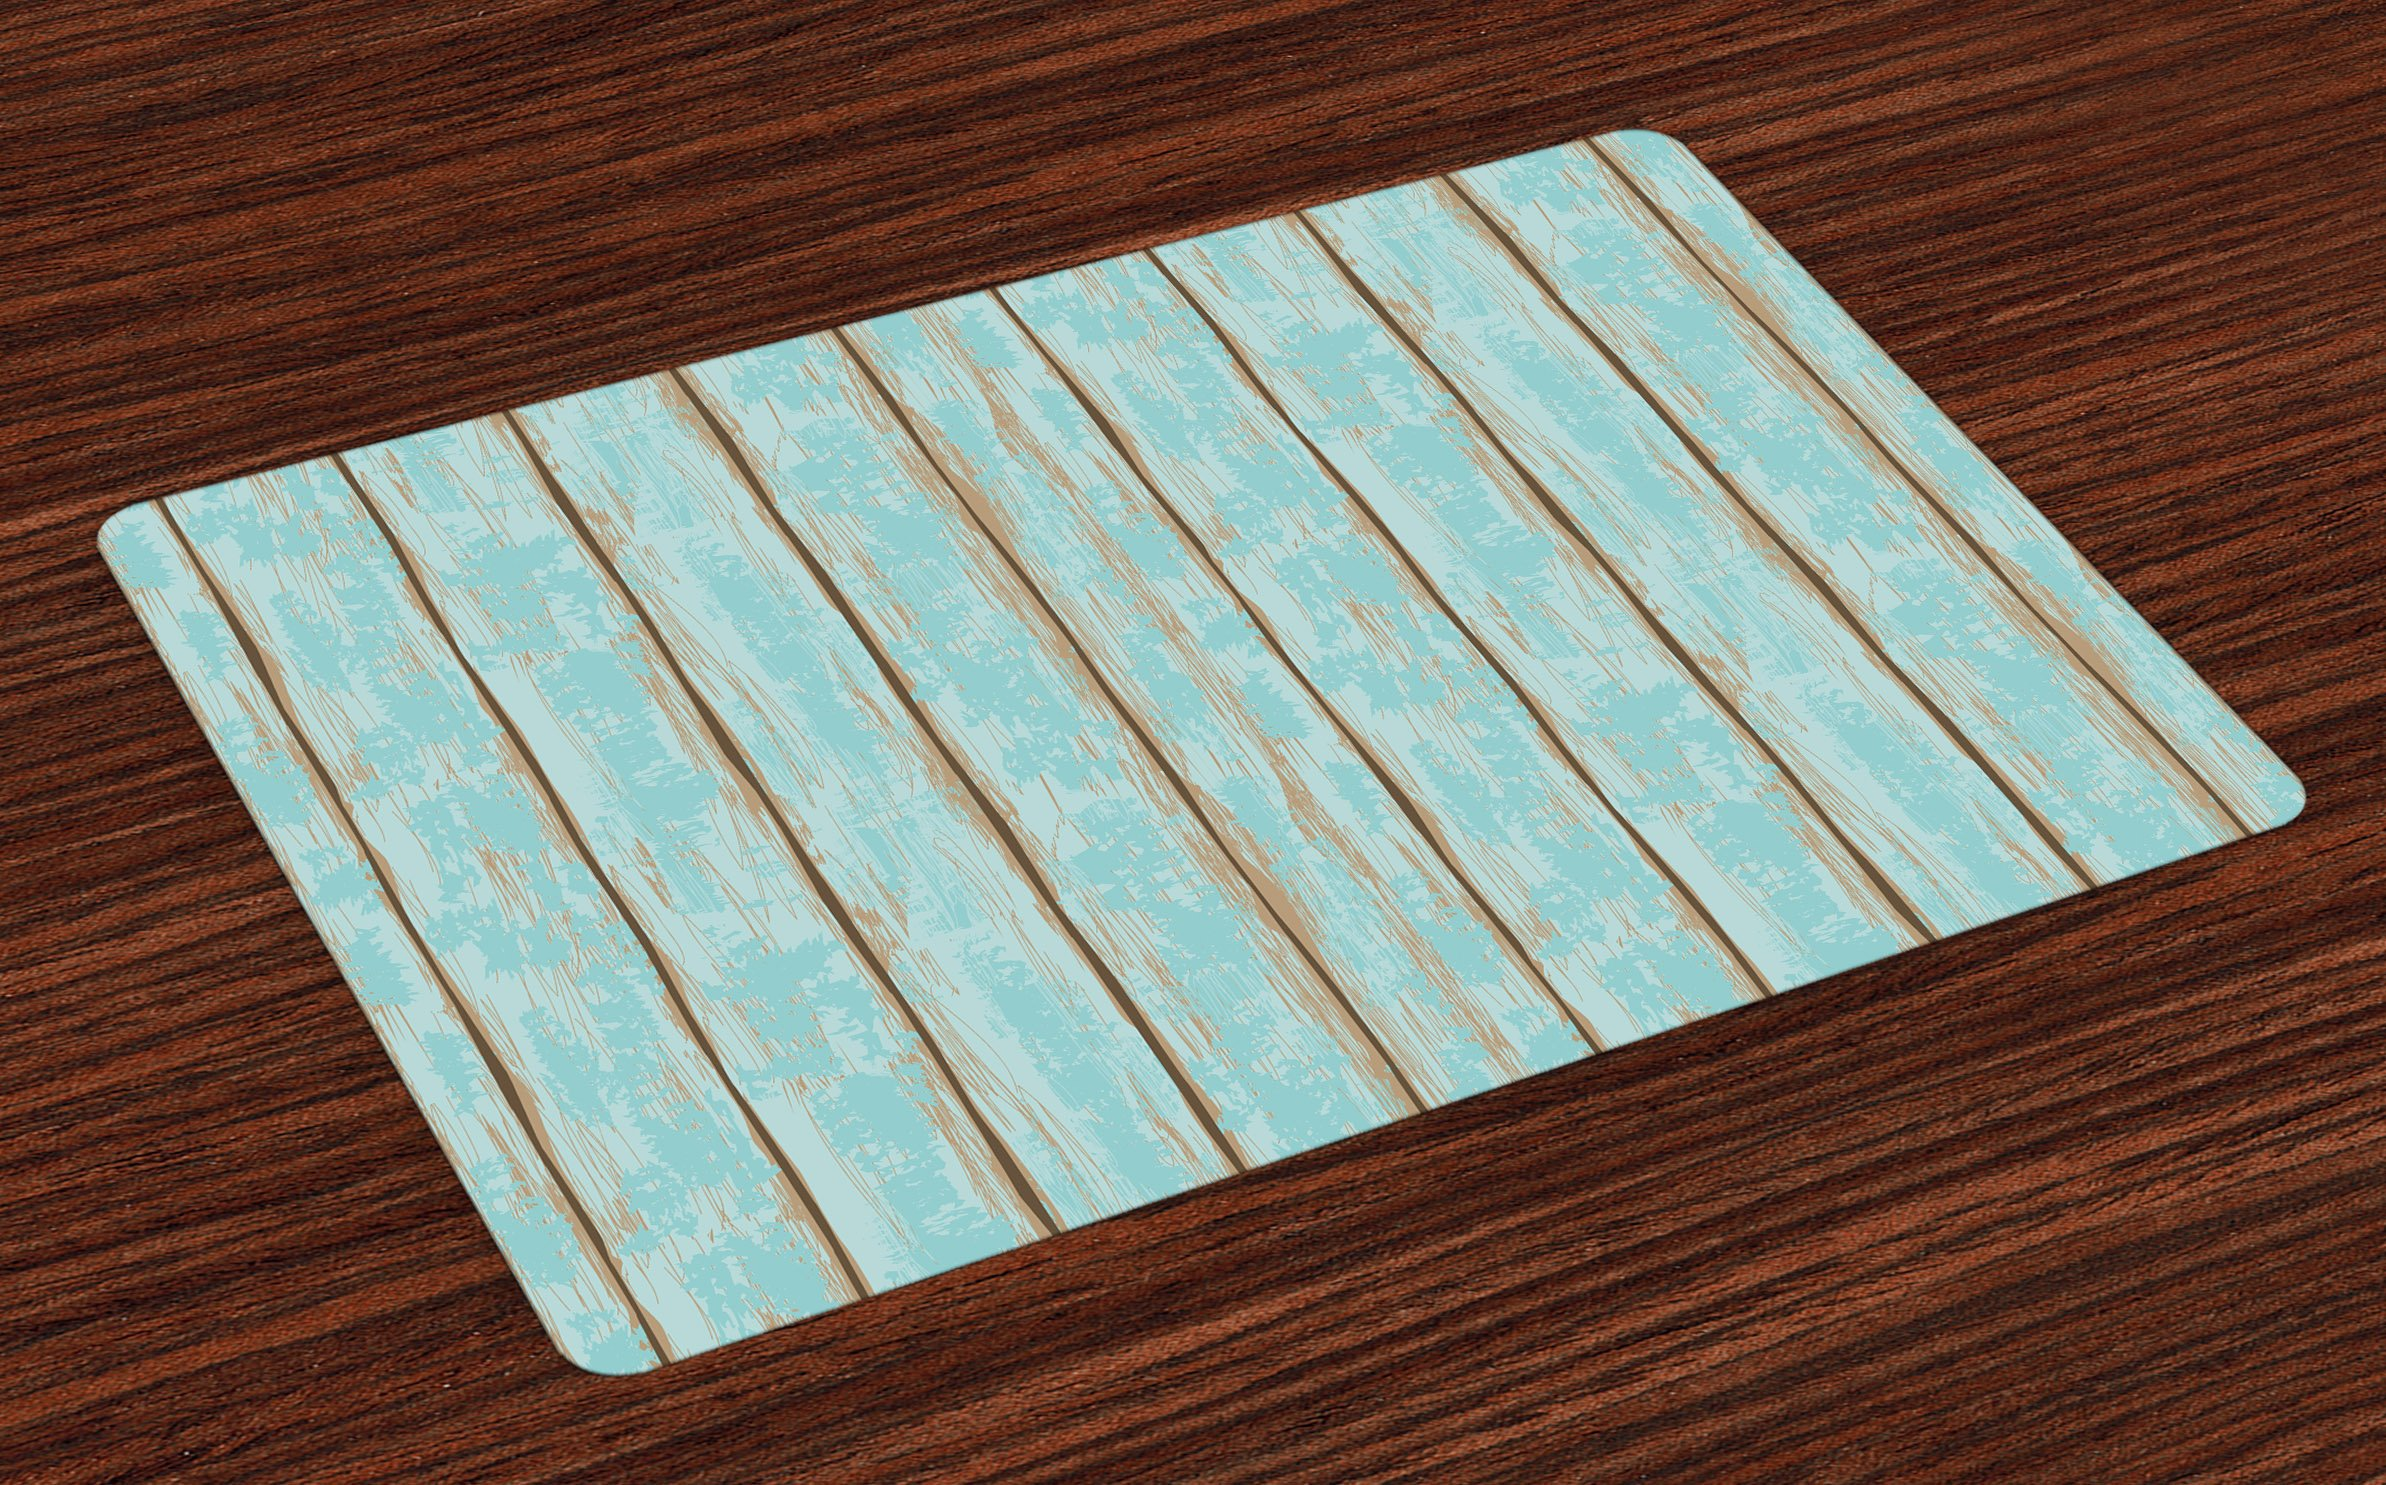 Lunarable Wood Print Place Mats Set of 4, Old Fashioned Weathered Rustic Planks Summer Cottage Beach Coastal Theme, Washable Fabric Placemats for Dining Room Kitchen Table Decoration, Pale Blue Tan by Lunarable (Image #1)